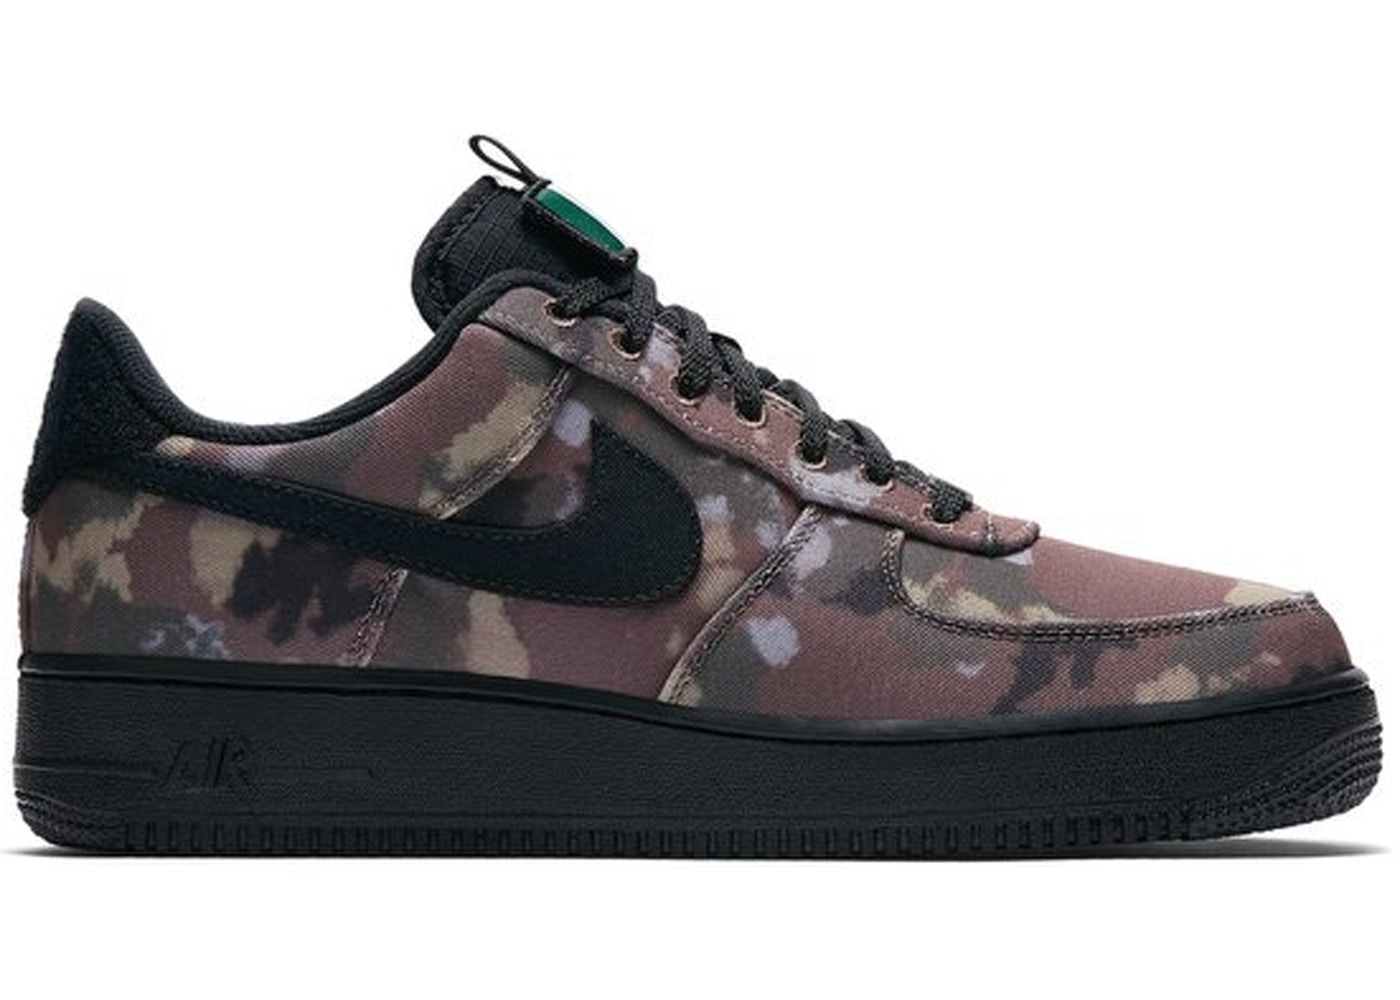 Nike Air Force 1 Low Country Camo Italy